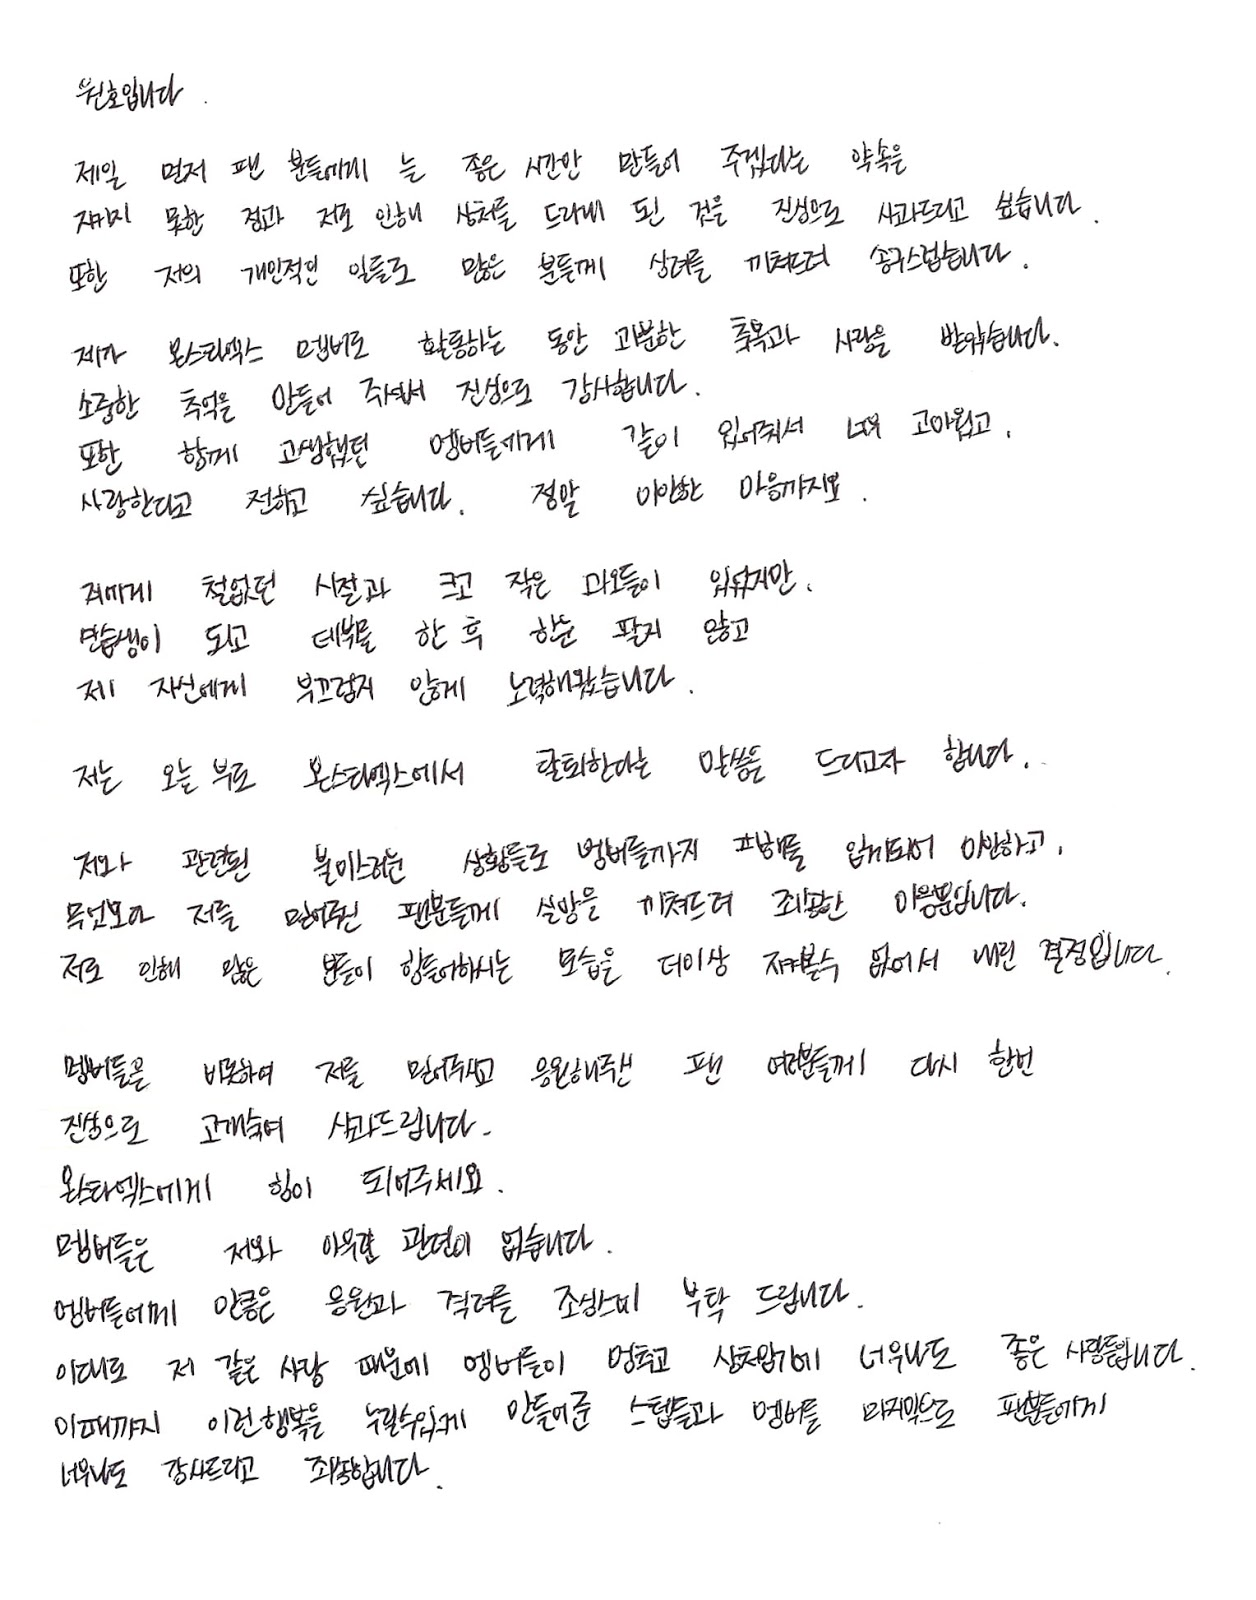 Wonho Wrote a Letter to Fans After Reportedly Leaving Monsta X